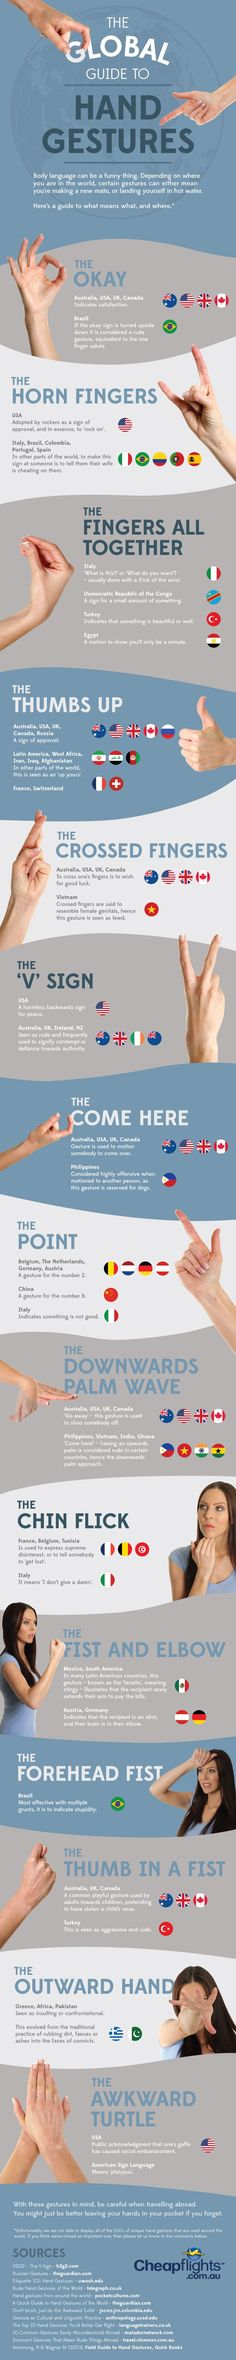 An infographic on how different countries view common hand gestures.